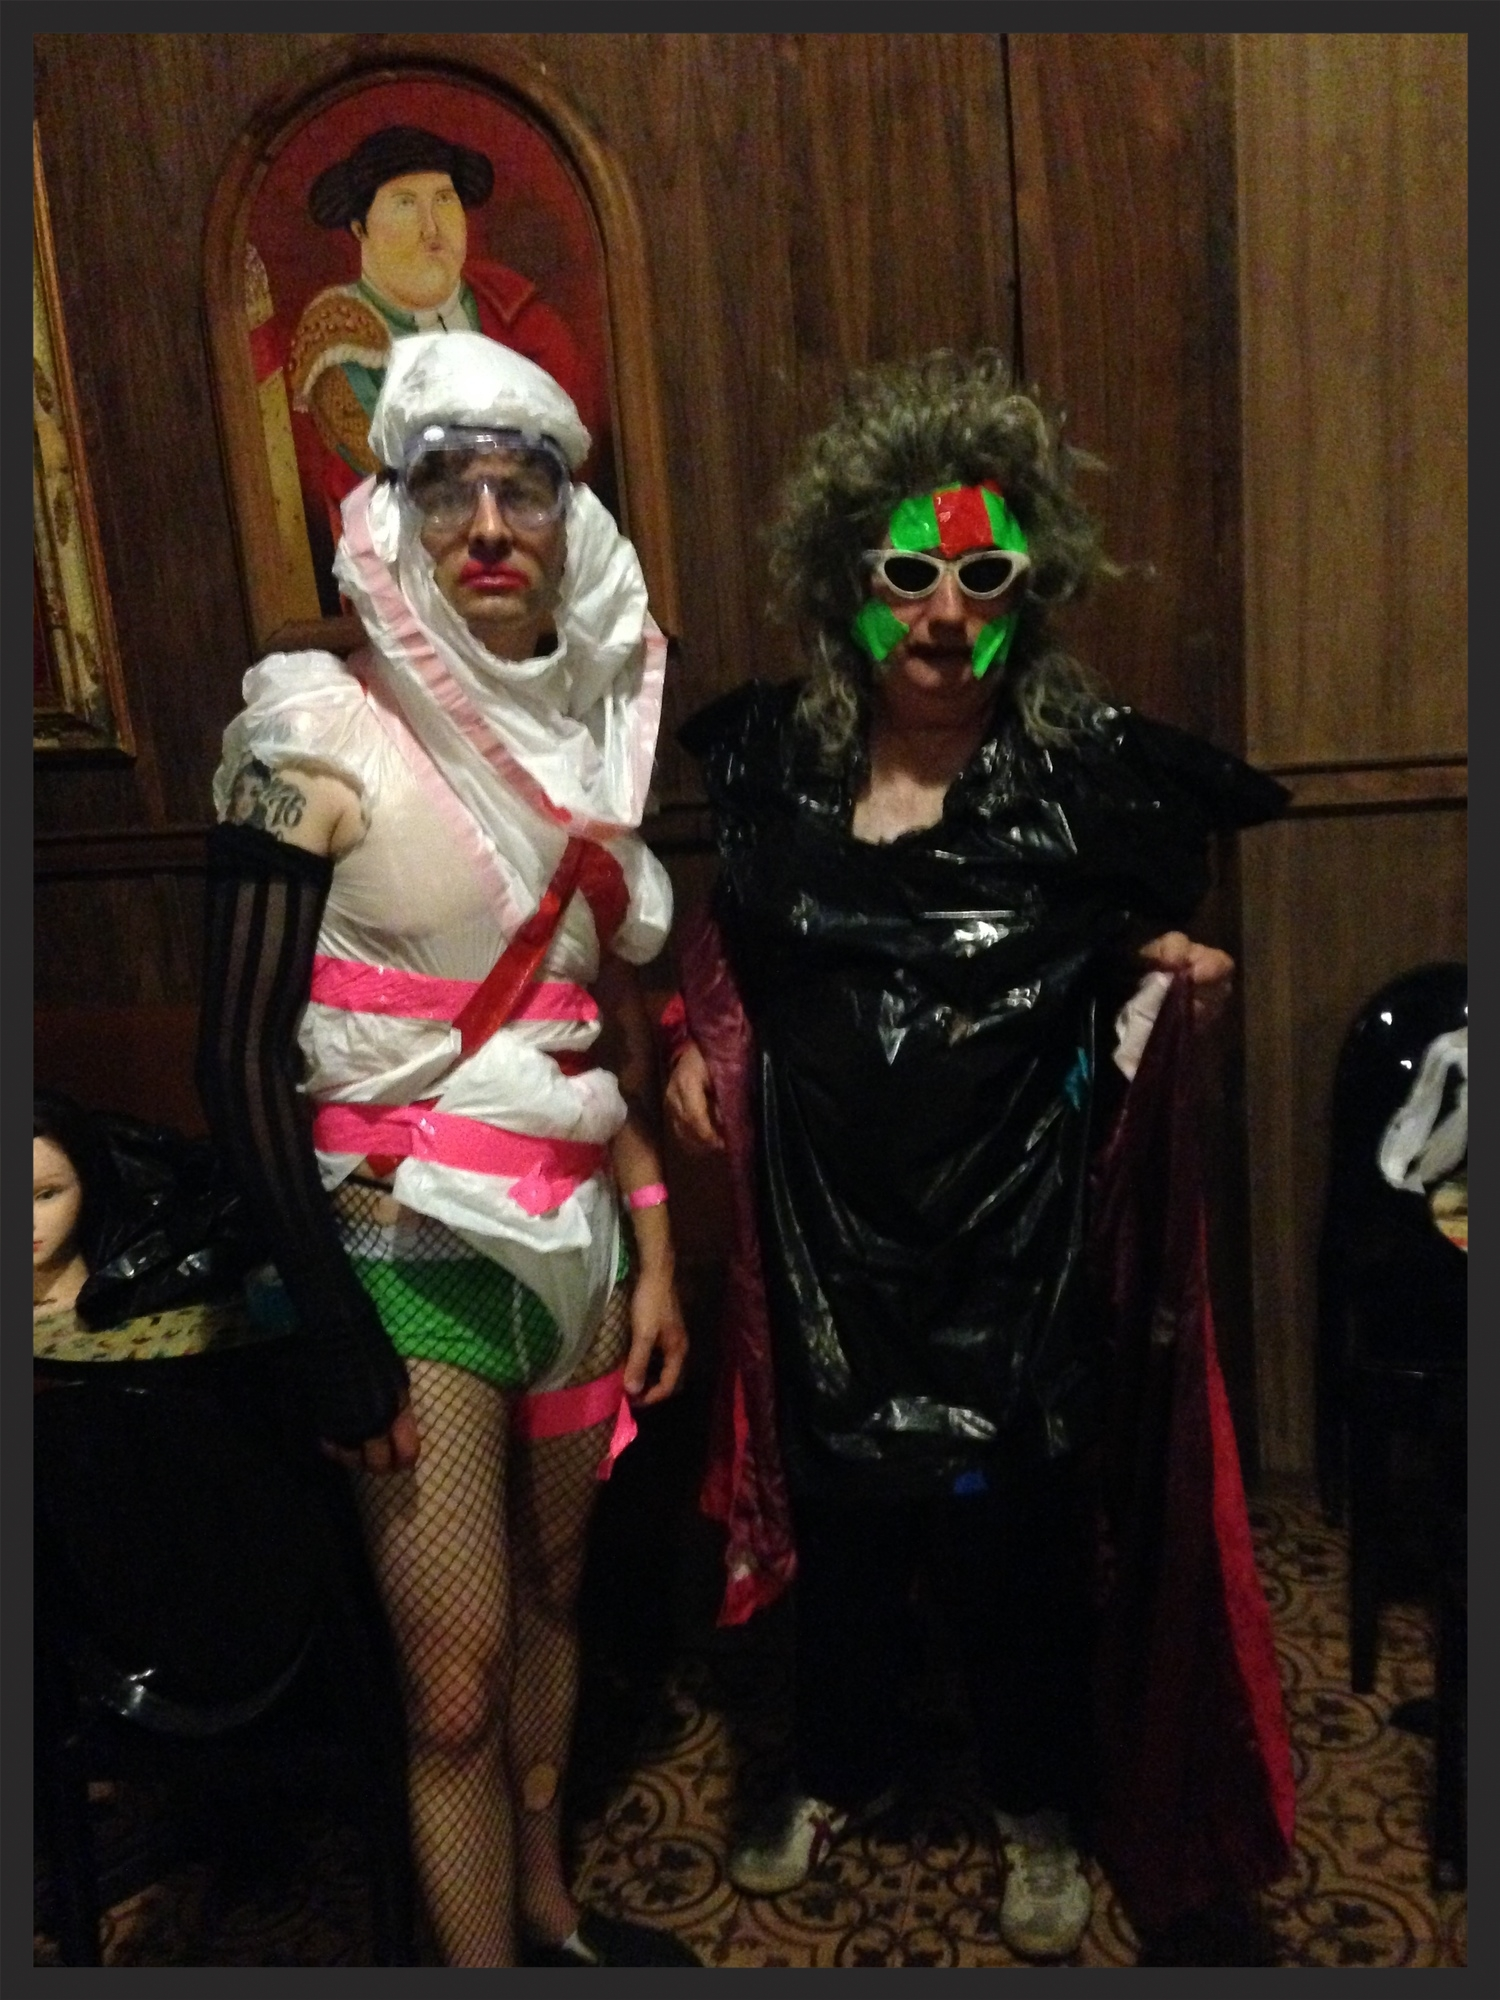 Me backstage with Gary Wilson just before hitting the stage for our set at Los Globos